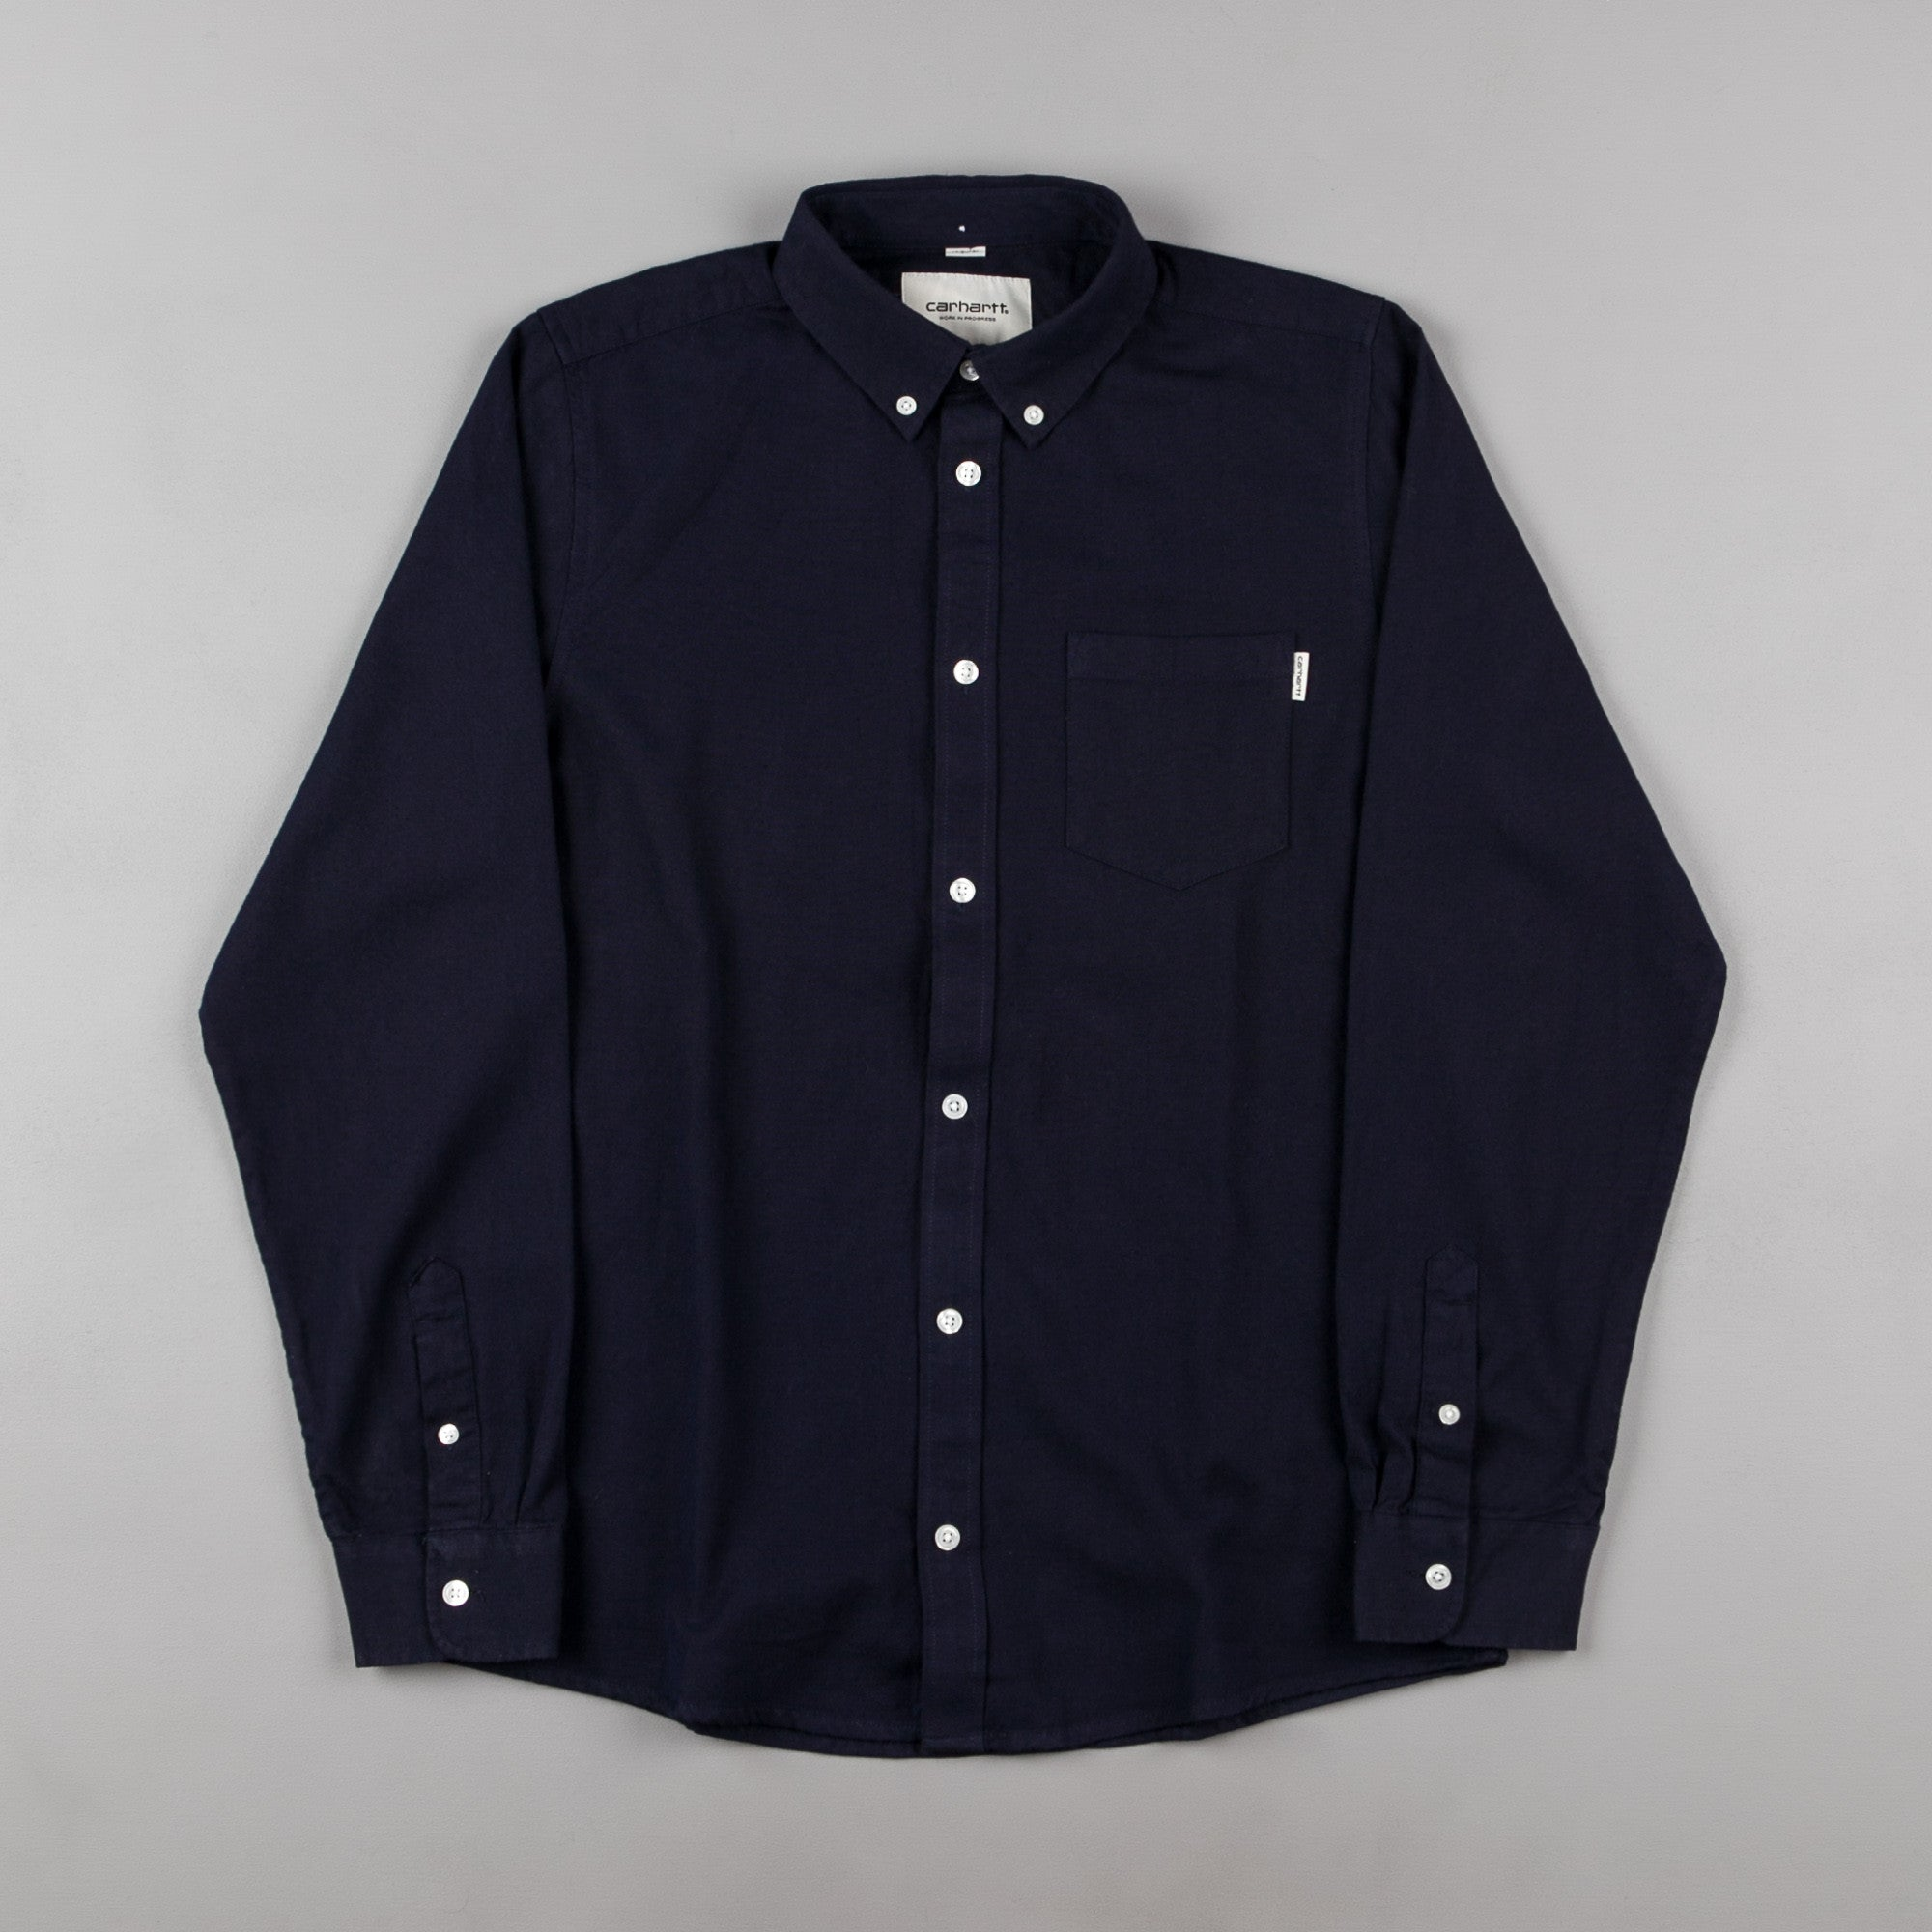 Carhartt Dalton Shirt - Blue / Black